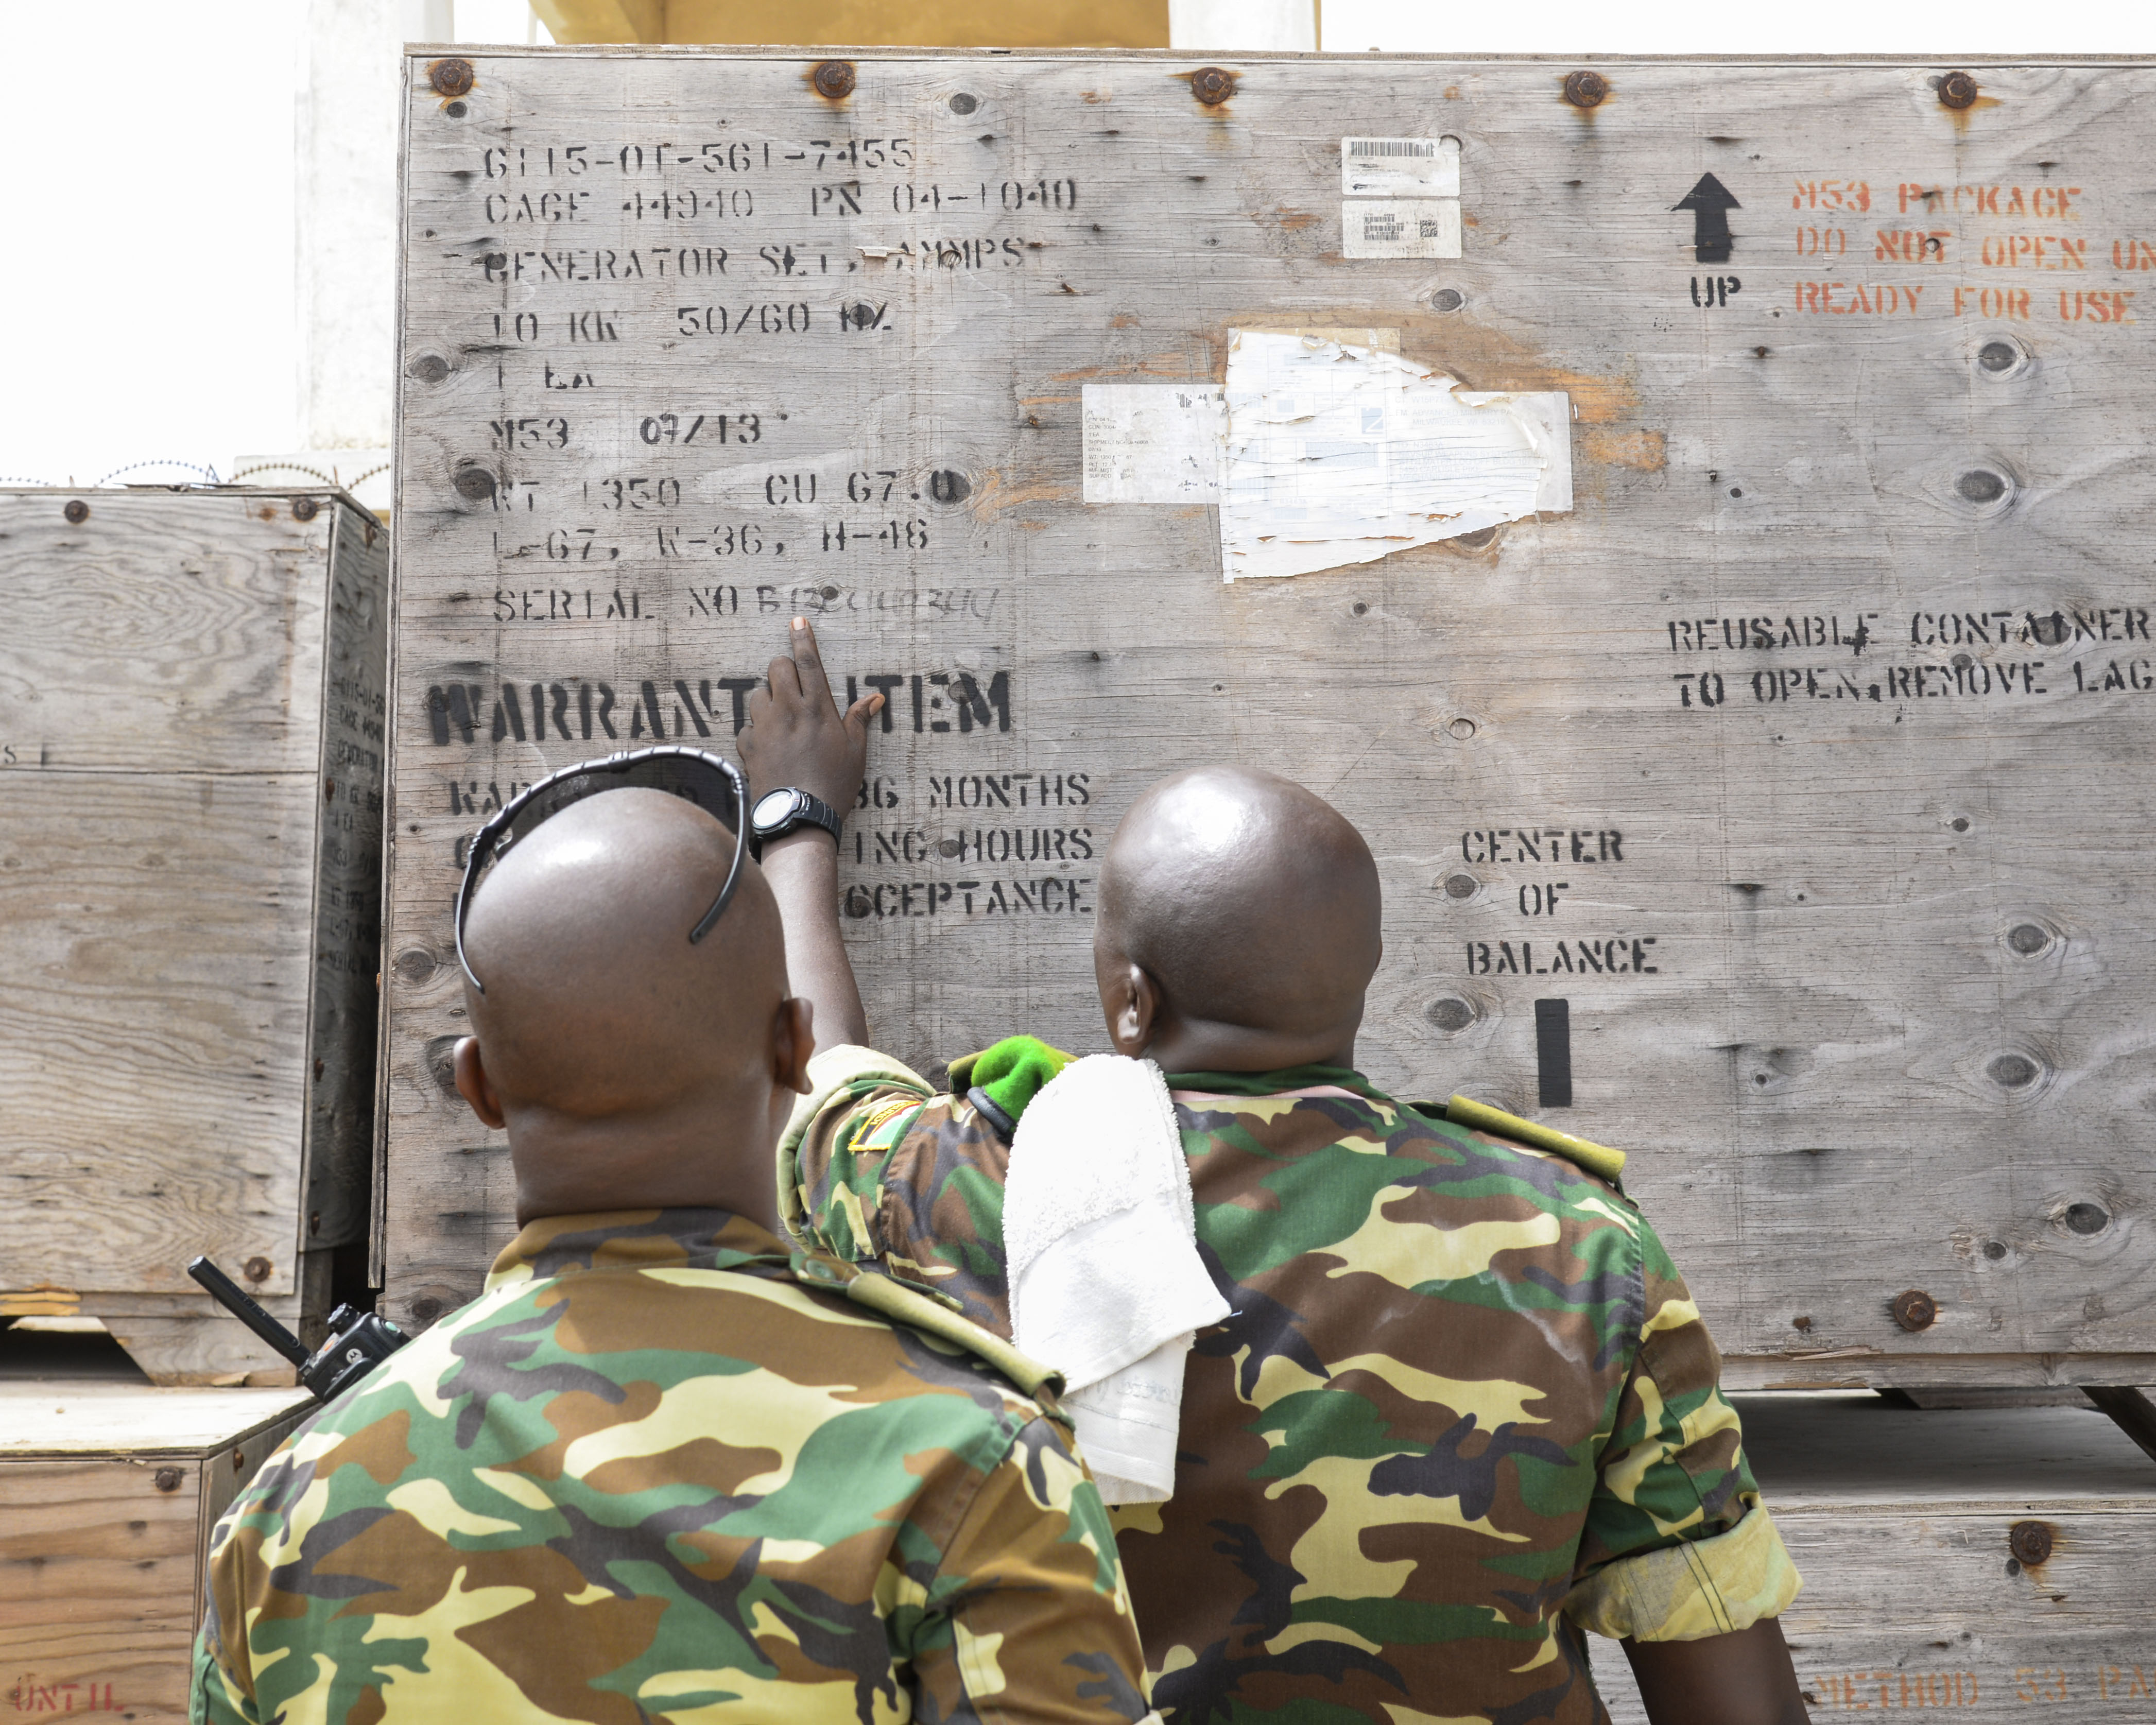 Soldiers from the Burundi National Defense Force verify a power generator's serial number in Mogadishu, Somalia, Sept. 12, 2016. Both Burundi and U.S. forces verified the product serial numbers to verify that items shipped from the U.S. overseas to Somalia were specifically what was requested, and that inventory management was maintained. (U.S. Air Force photo by Staff Sgt. Benjamin Raughton)